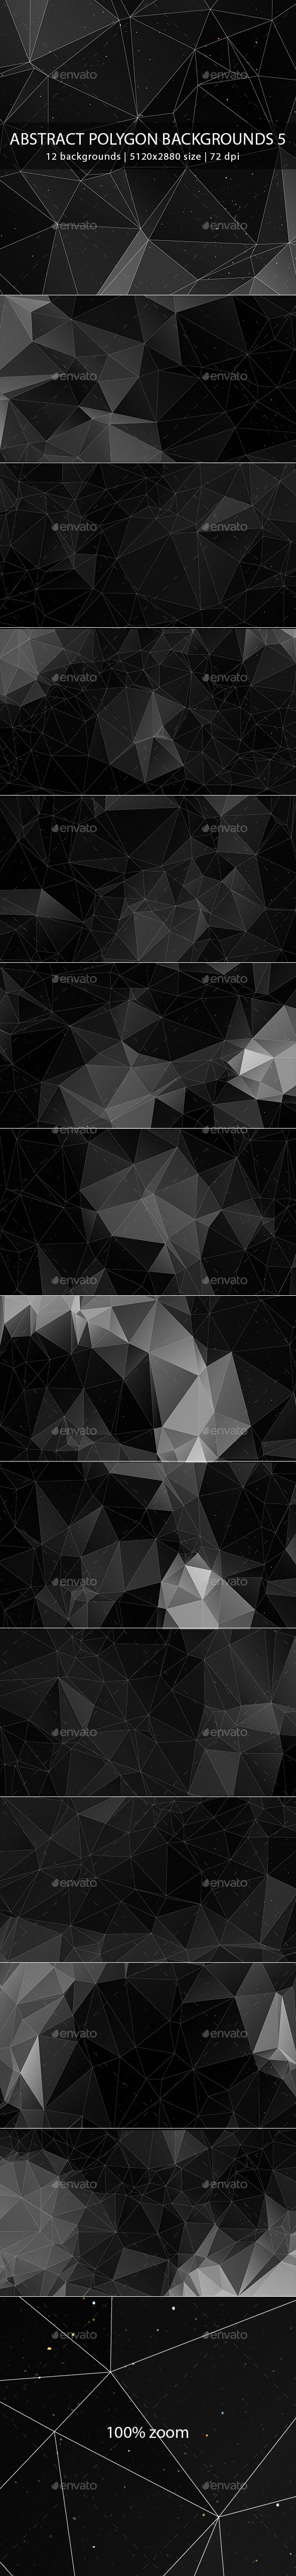 GraphicRiver Abstract Polygon Backgrounds 5 9896263